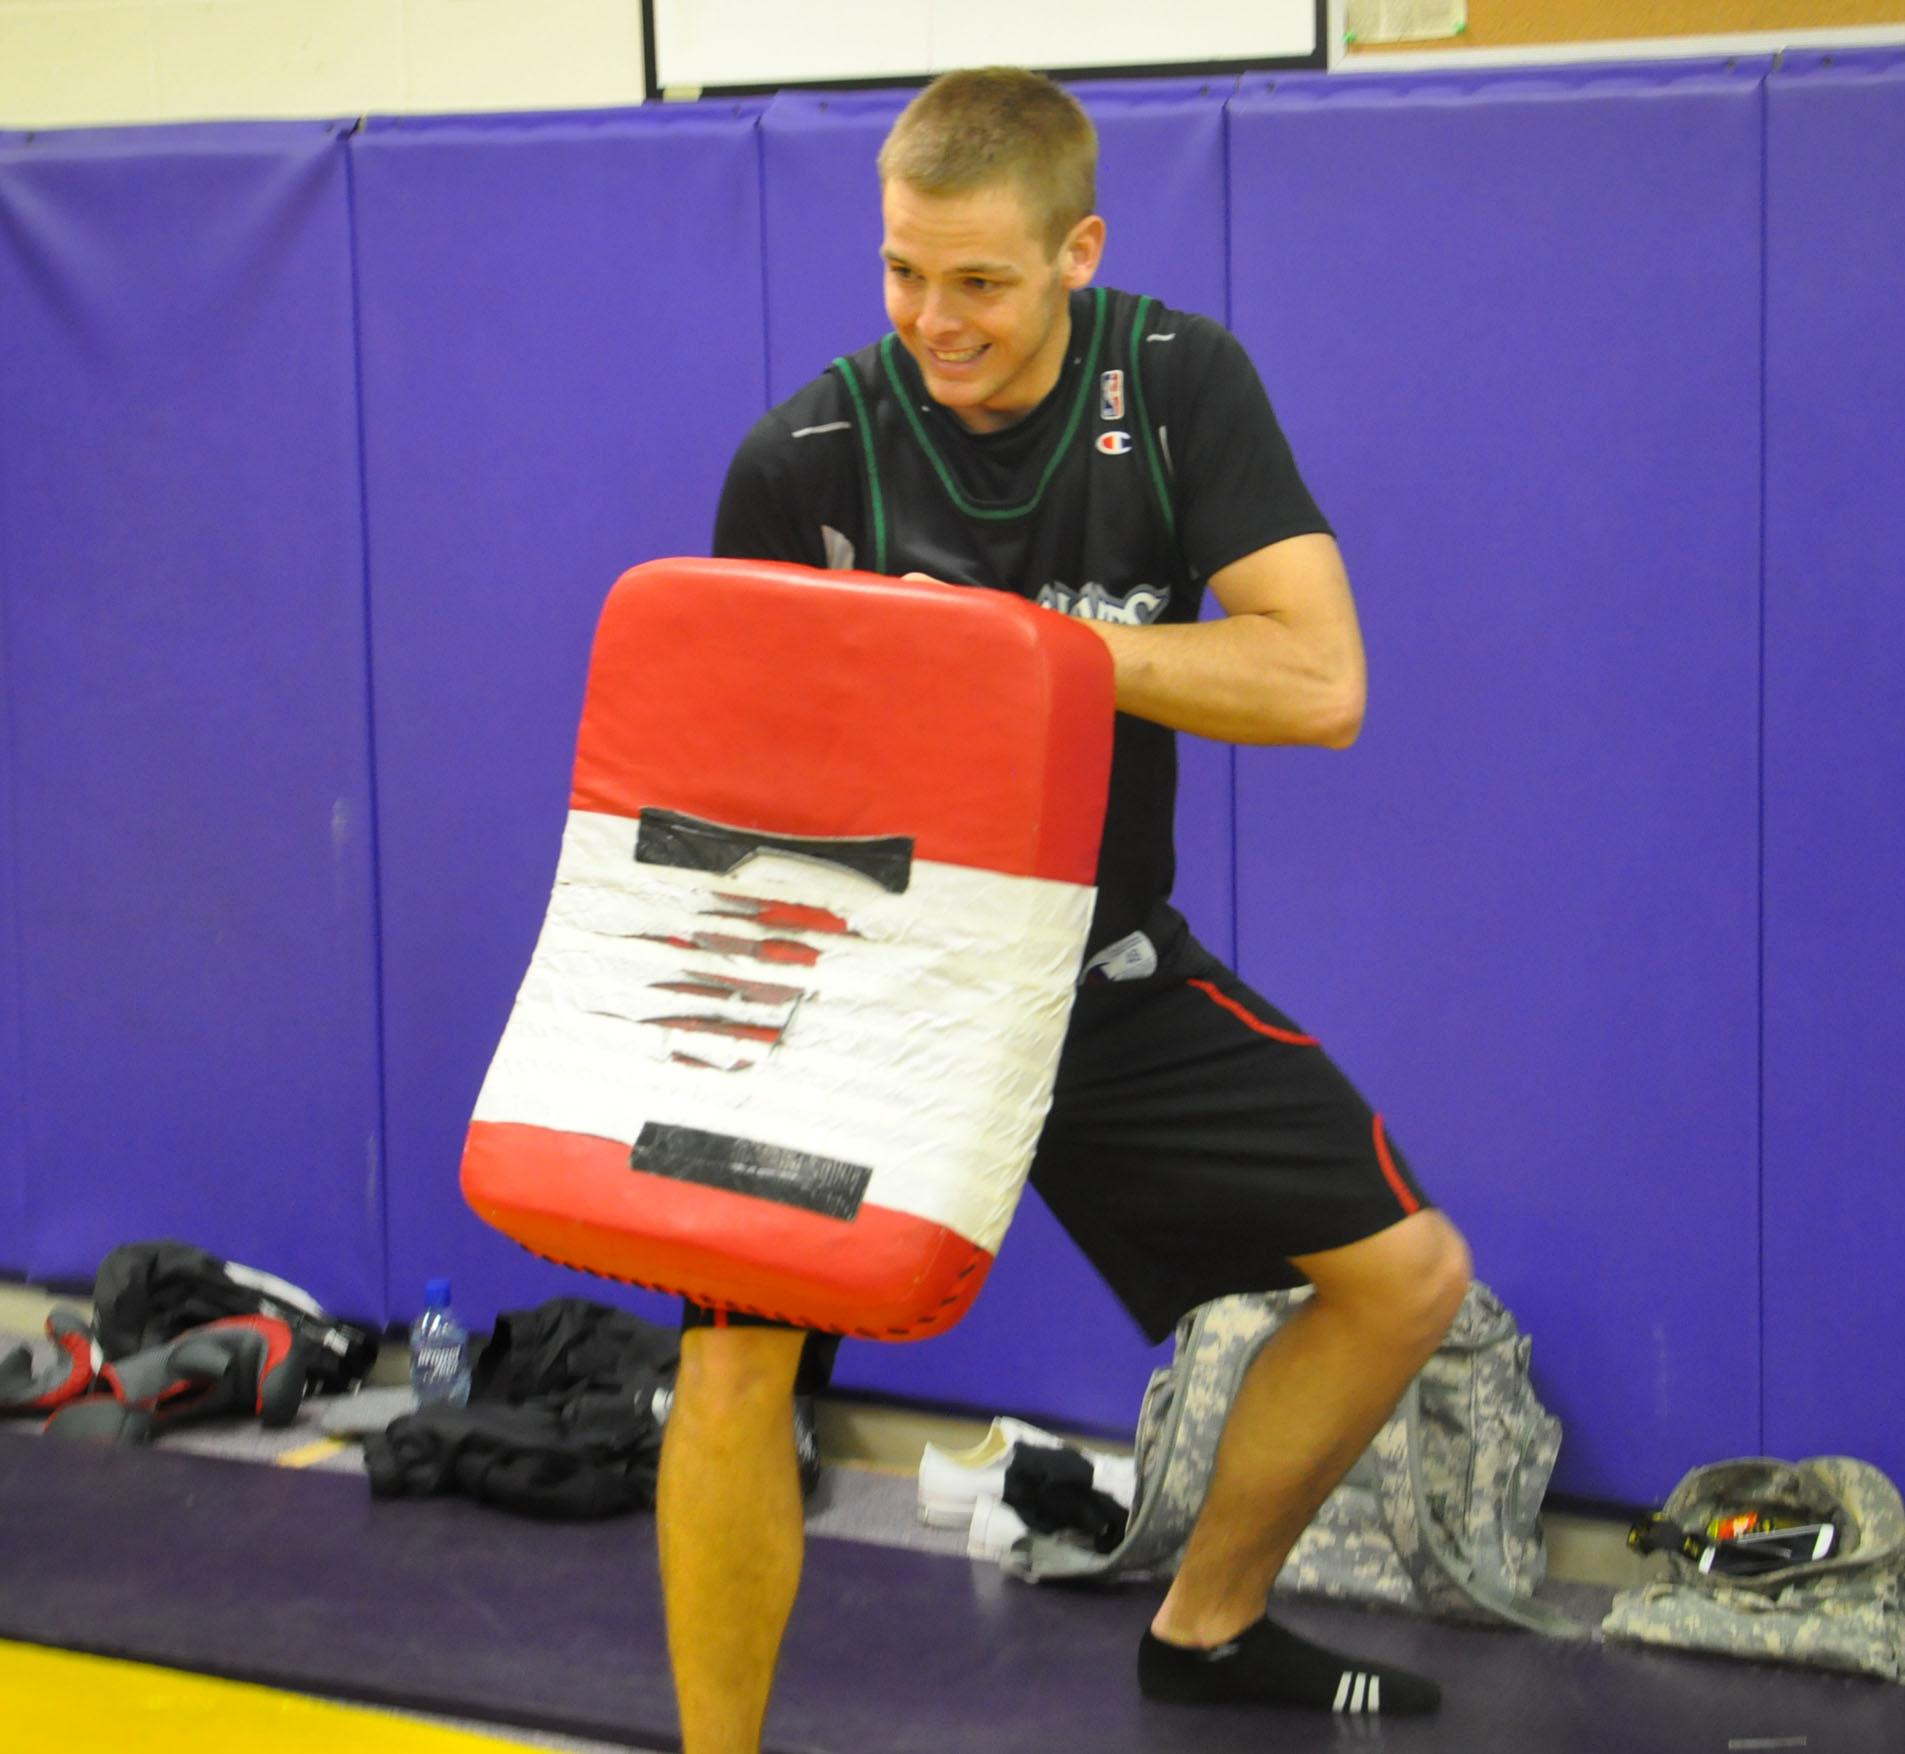 Senior Joe Hawks prepares to embrace a kick from a student during the self-defense class on March 14. The class also included activities such as punching, swing kicks, and knee punching.